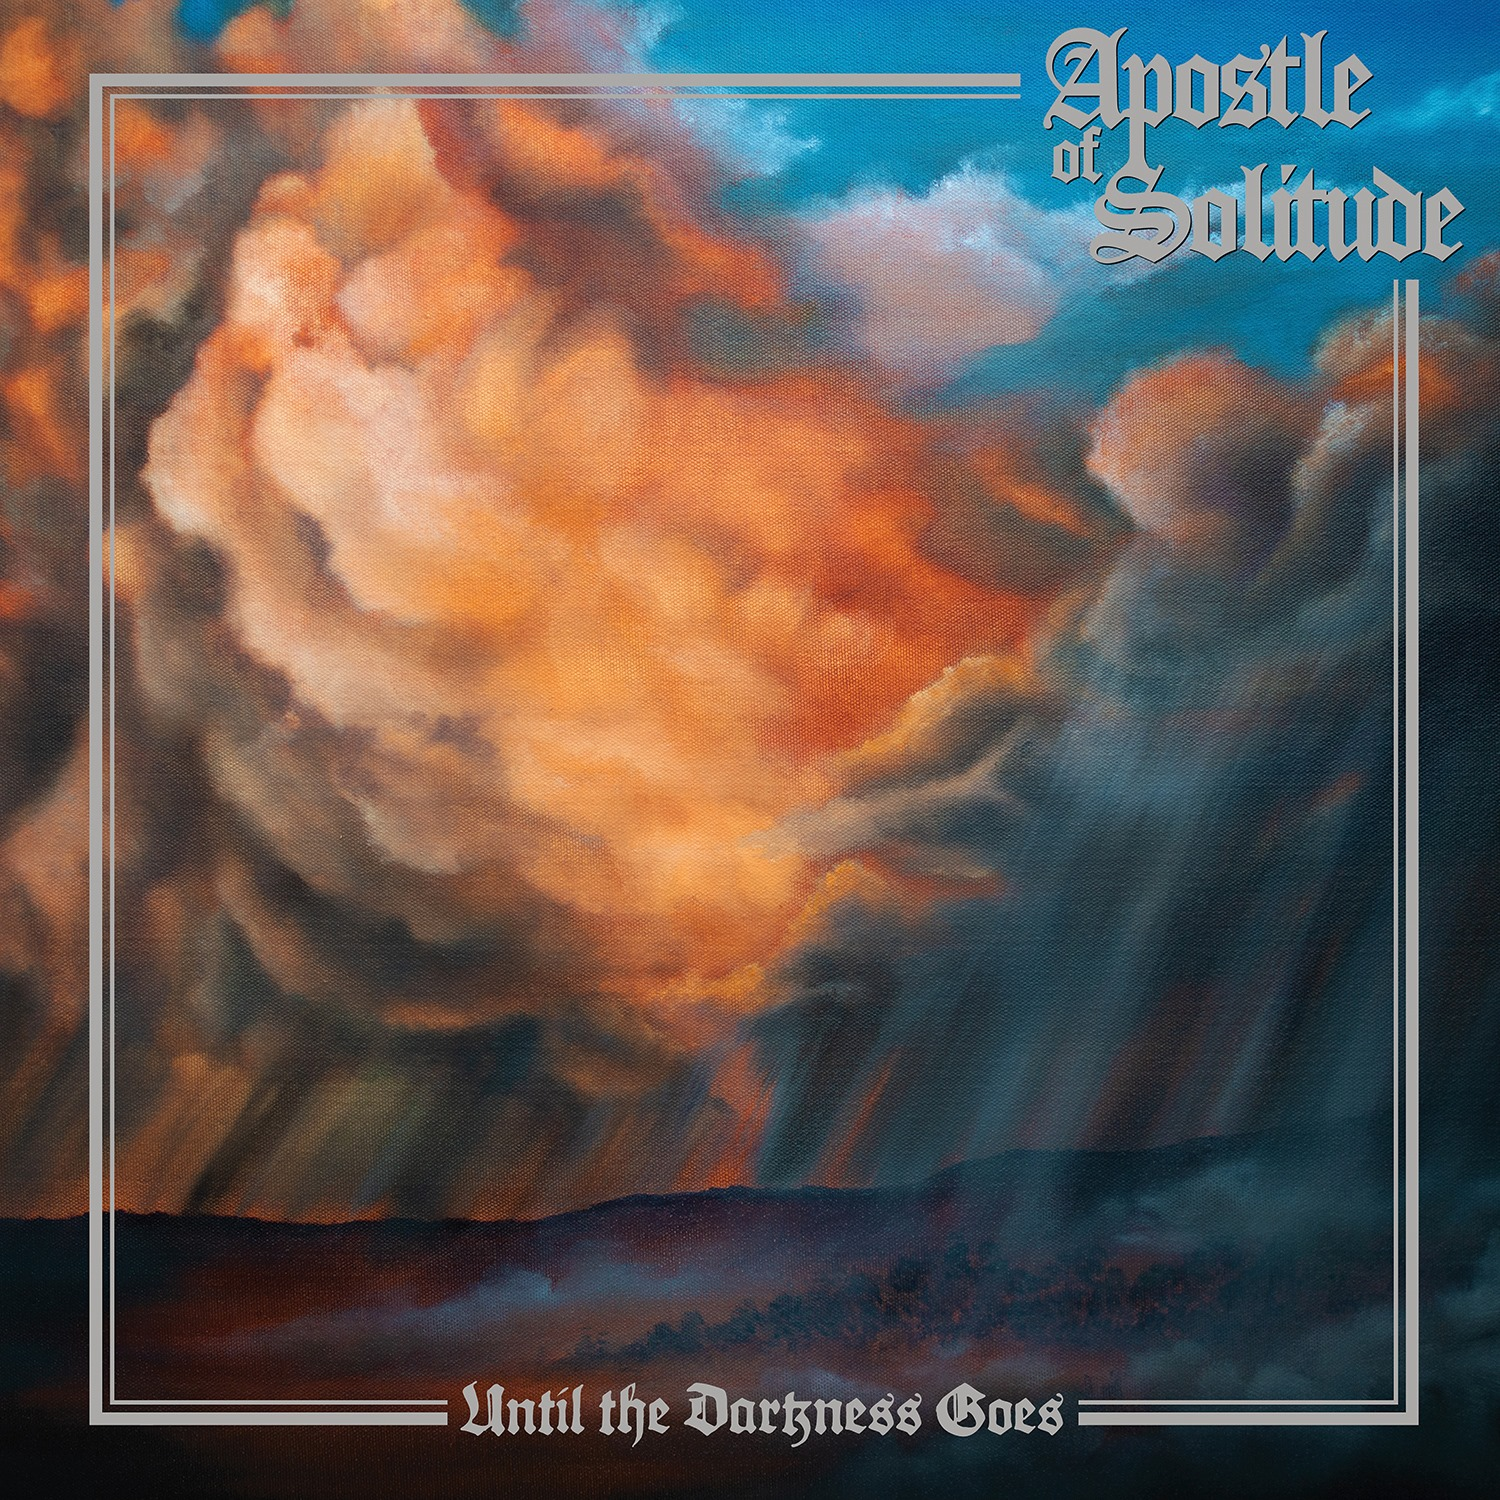 Apostle of Solitude Until the Darkness Goes